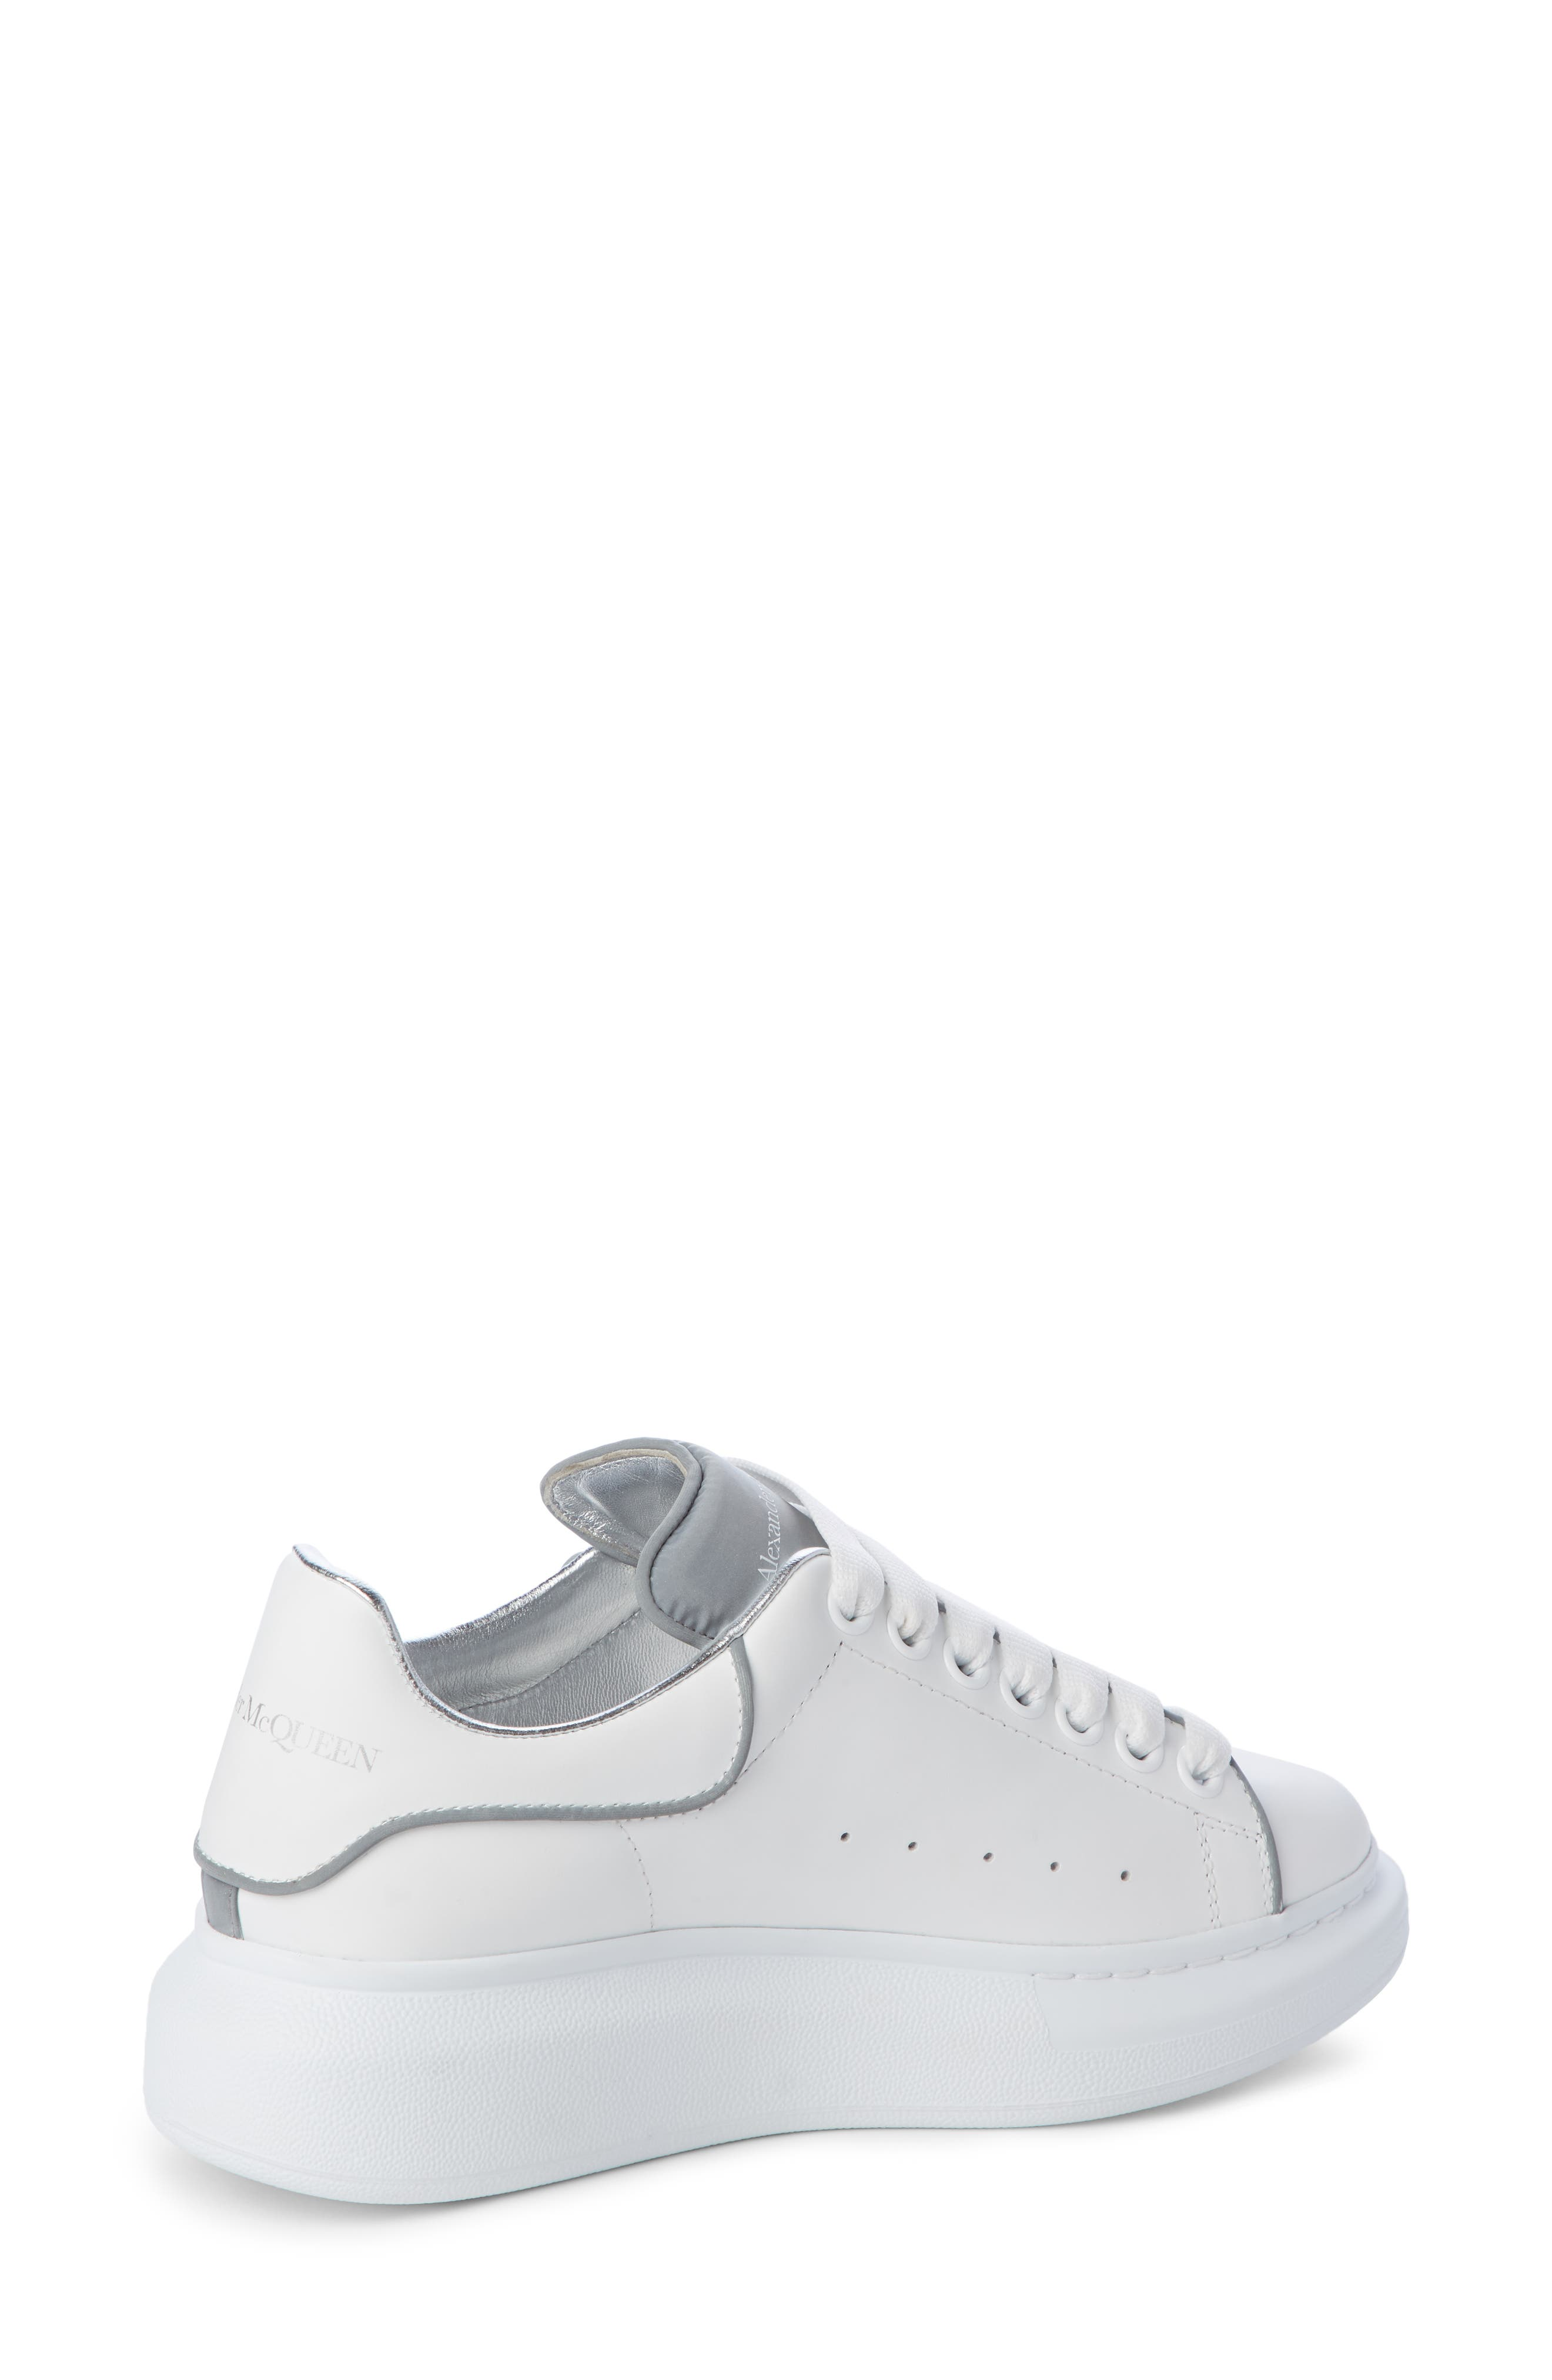 ALEXANDER MCQUEEN,                             Sneaker,                             Alternate thumbnail 2, color,                             WHITE/ SILVER PIPING